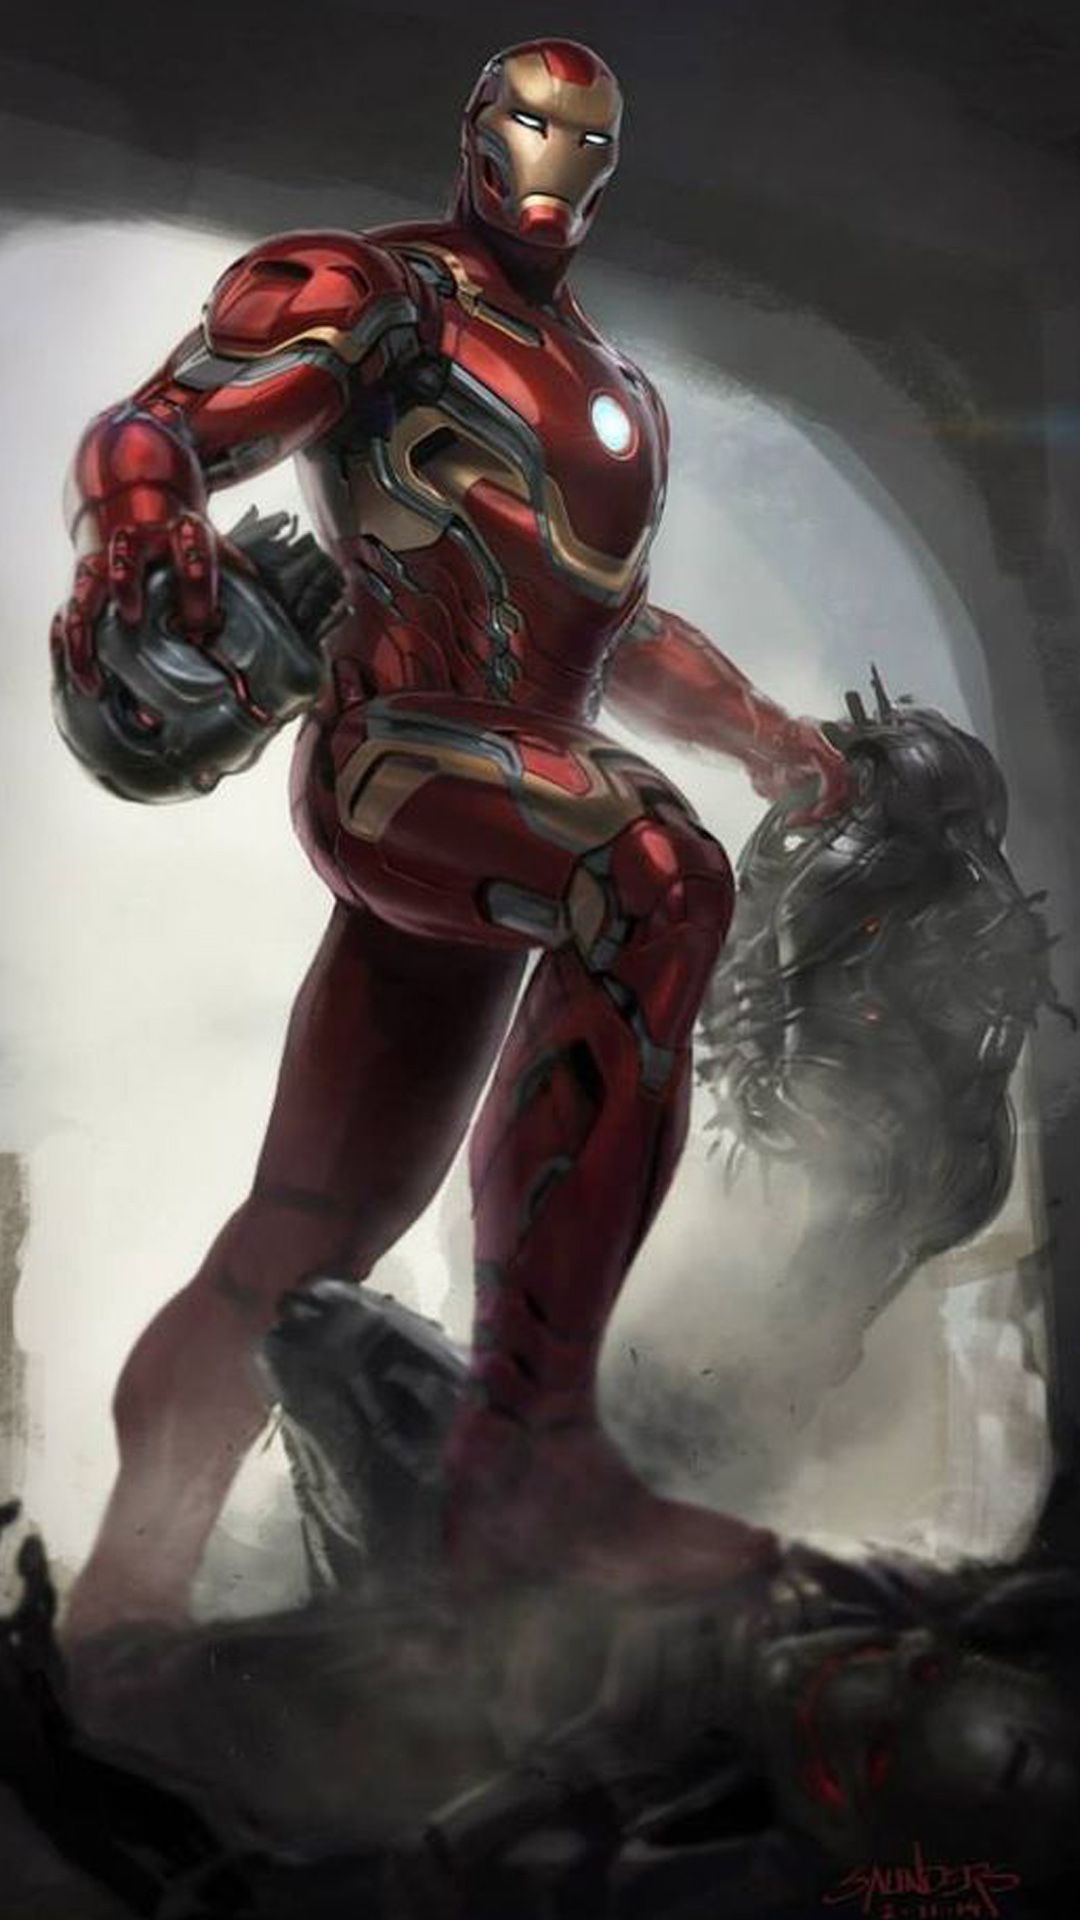 Iron man iphone wallpaper tumblr - Iron Man Iphone Wallpaper Tumblr 19